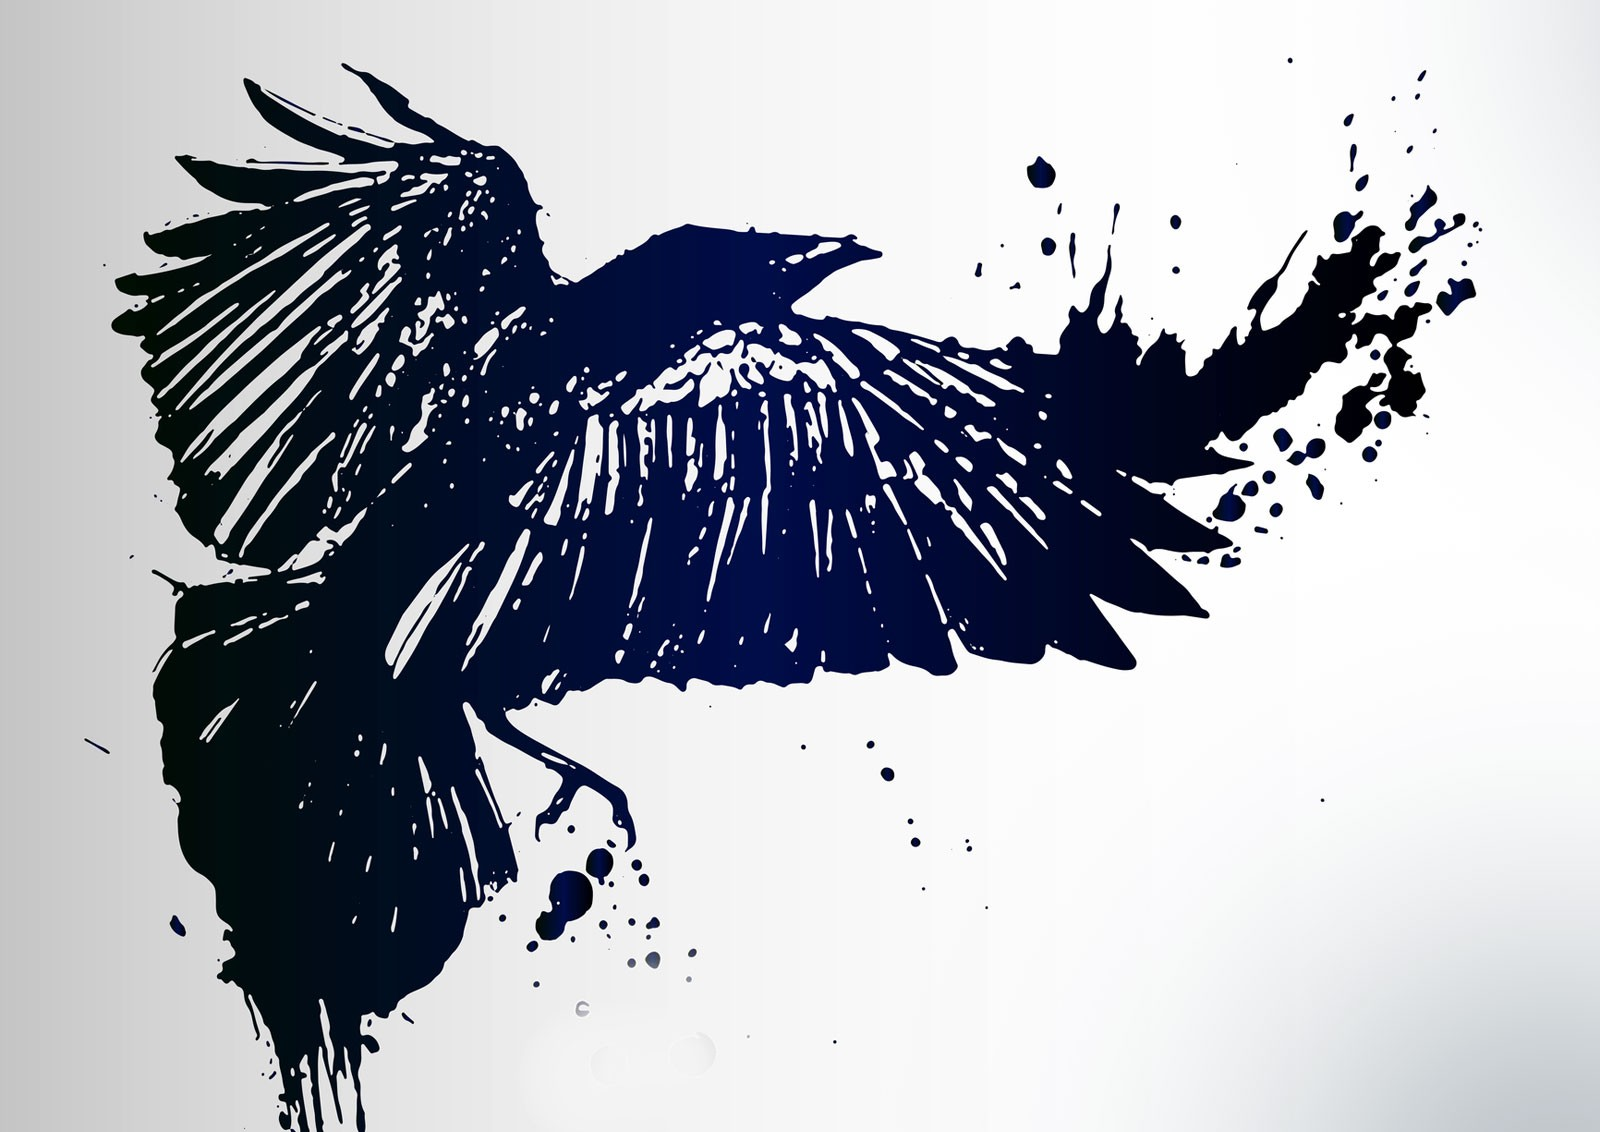 raven meaning and celtic tattoo ideas - Whats-Your-Sign.com